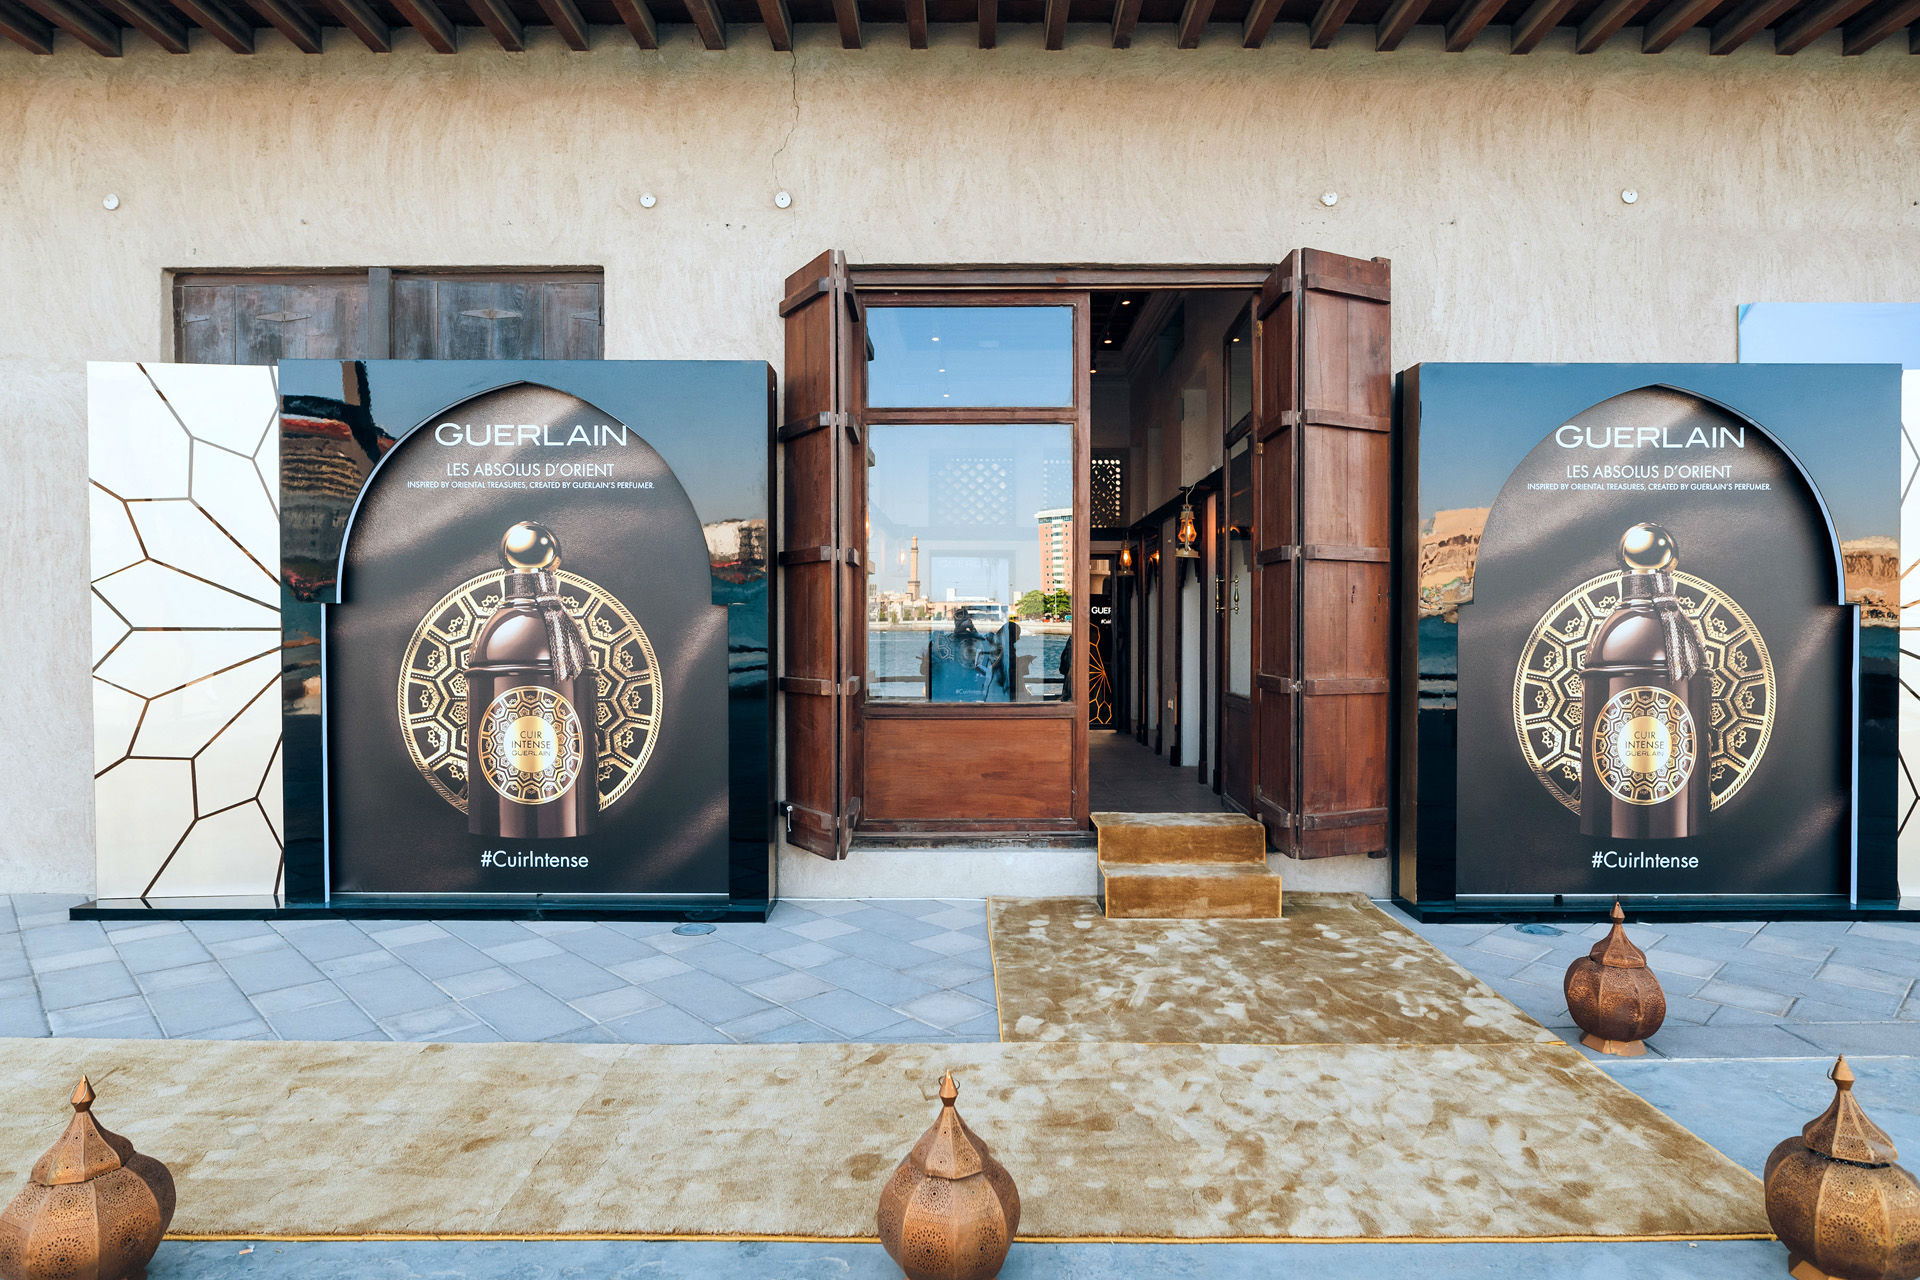 Guerlain teamed up with the perfume museum in Dubai to launch the new scent